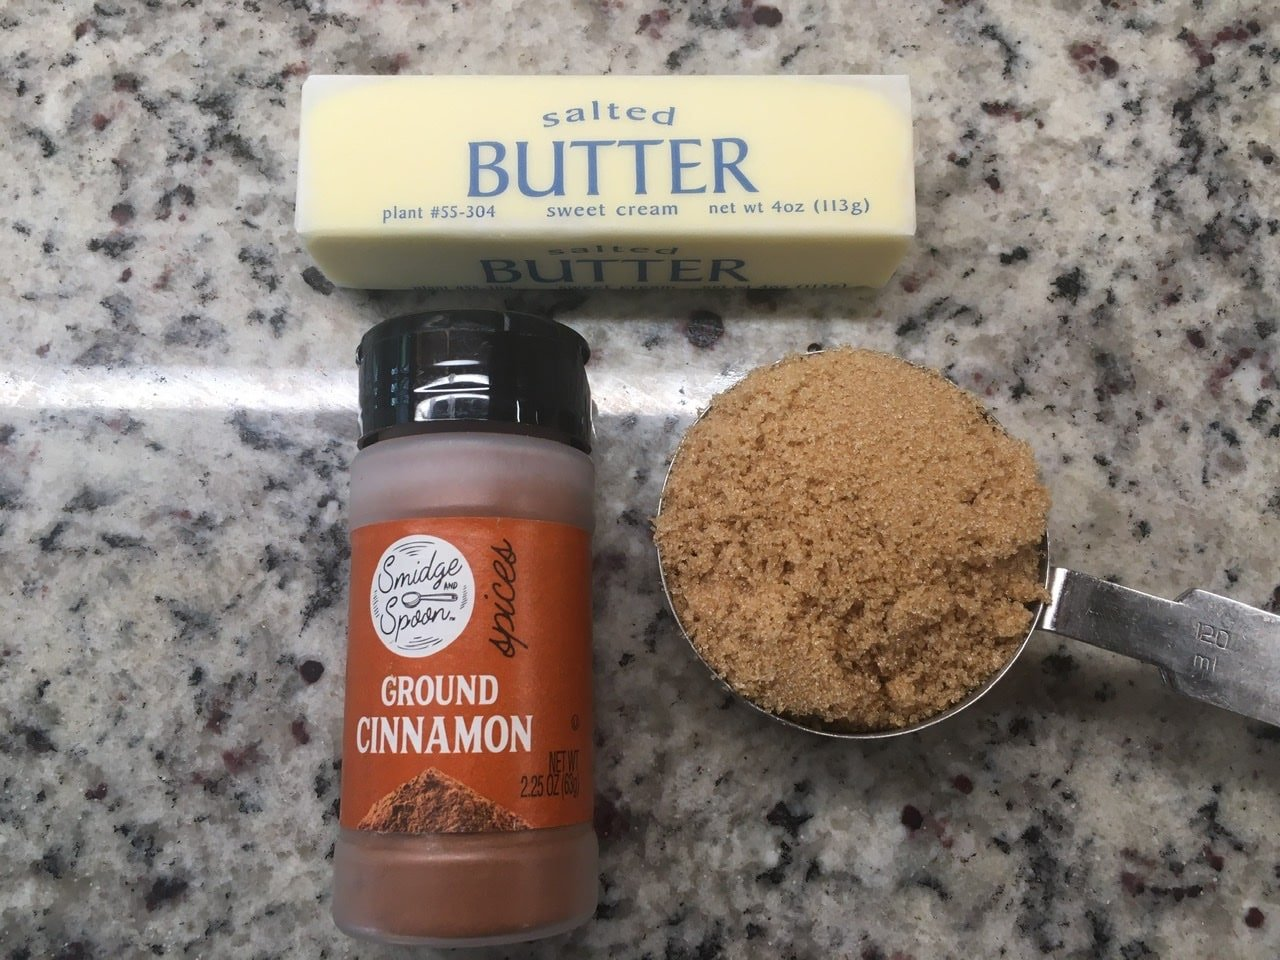 Filling ingredients including a butter, ground cinnamon, and a spoonful of brown sugar against a marble countertop.